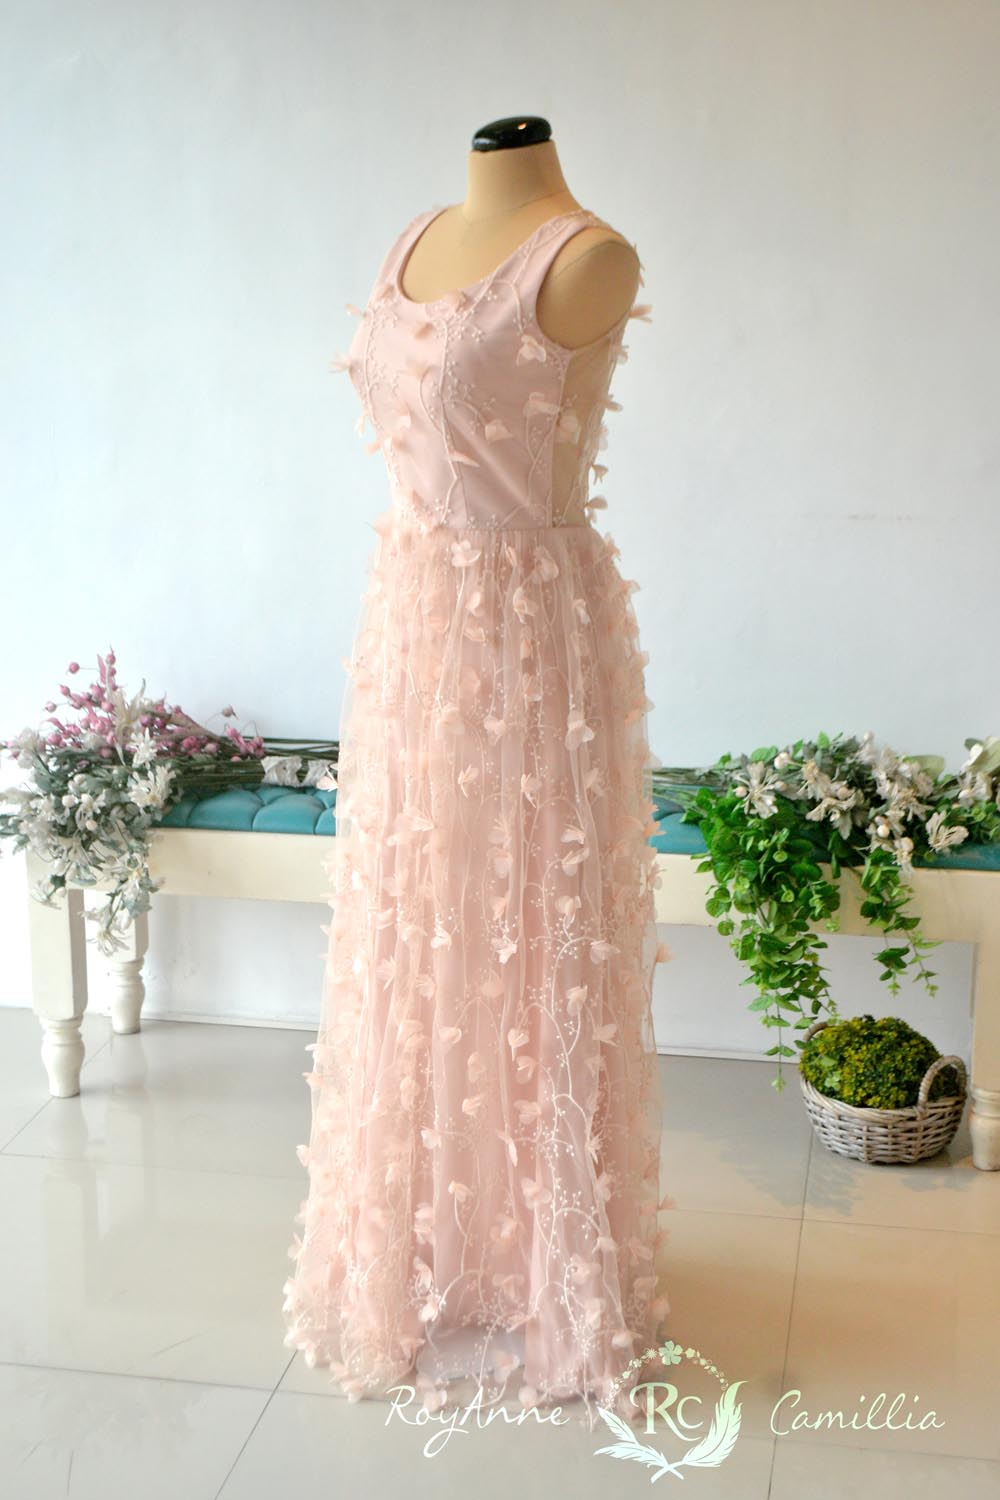 Funky Gown Rentals Quezon City Ideas - Ball Gown Wedding Dresses ...